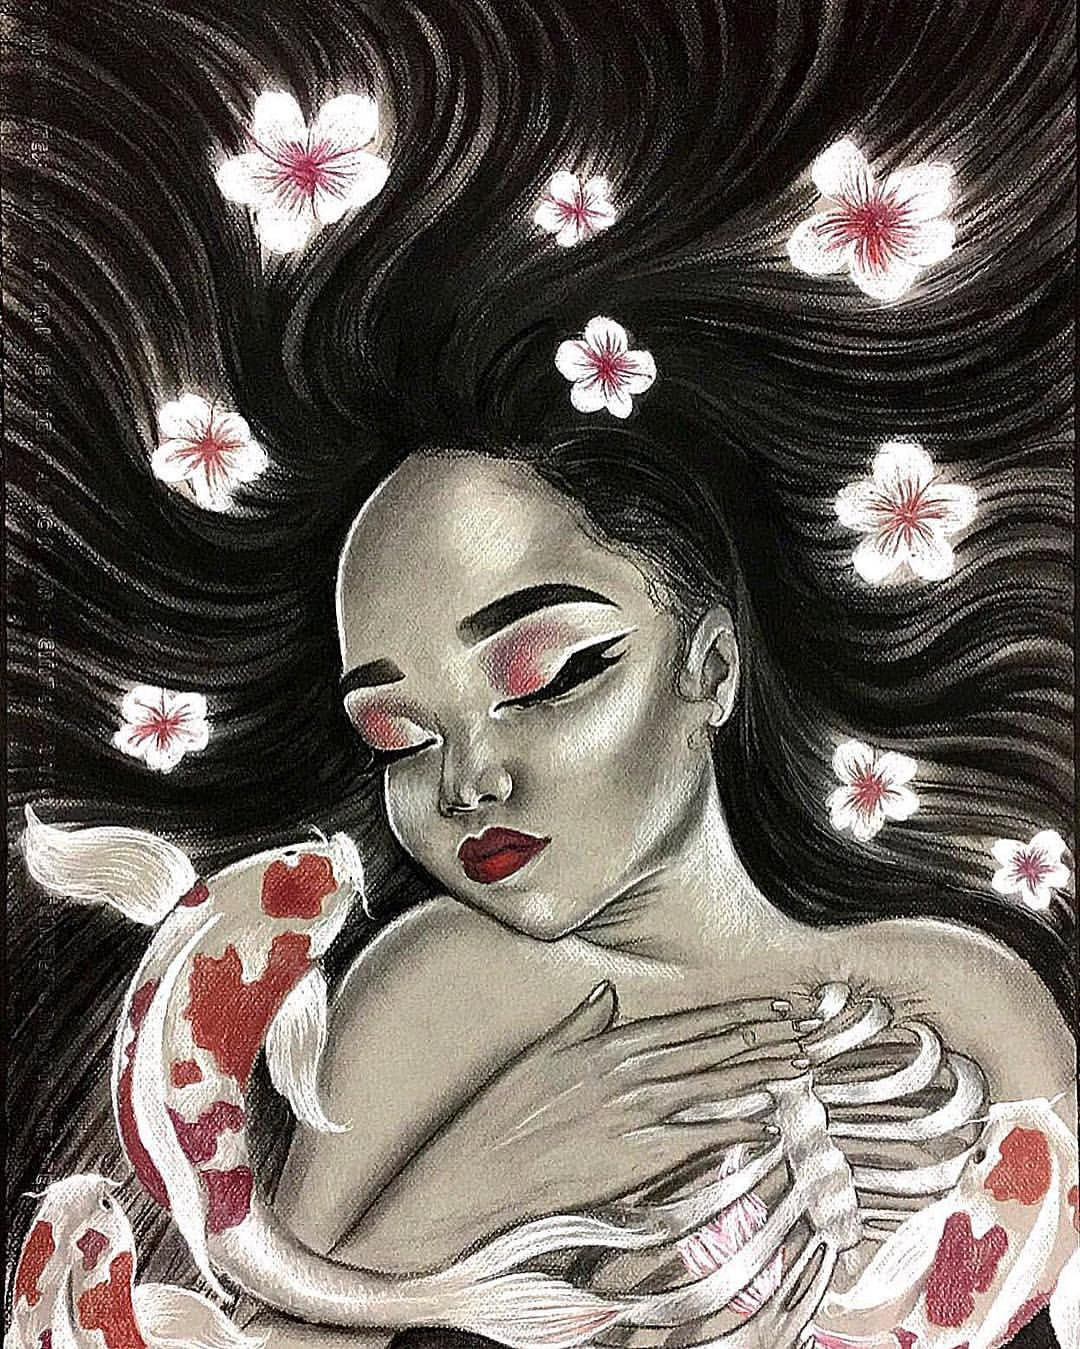 Instagram Christina Lorre Drawings